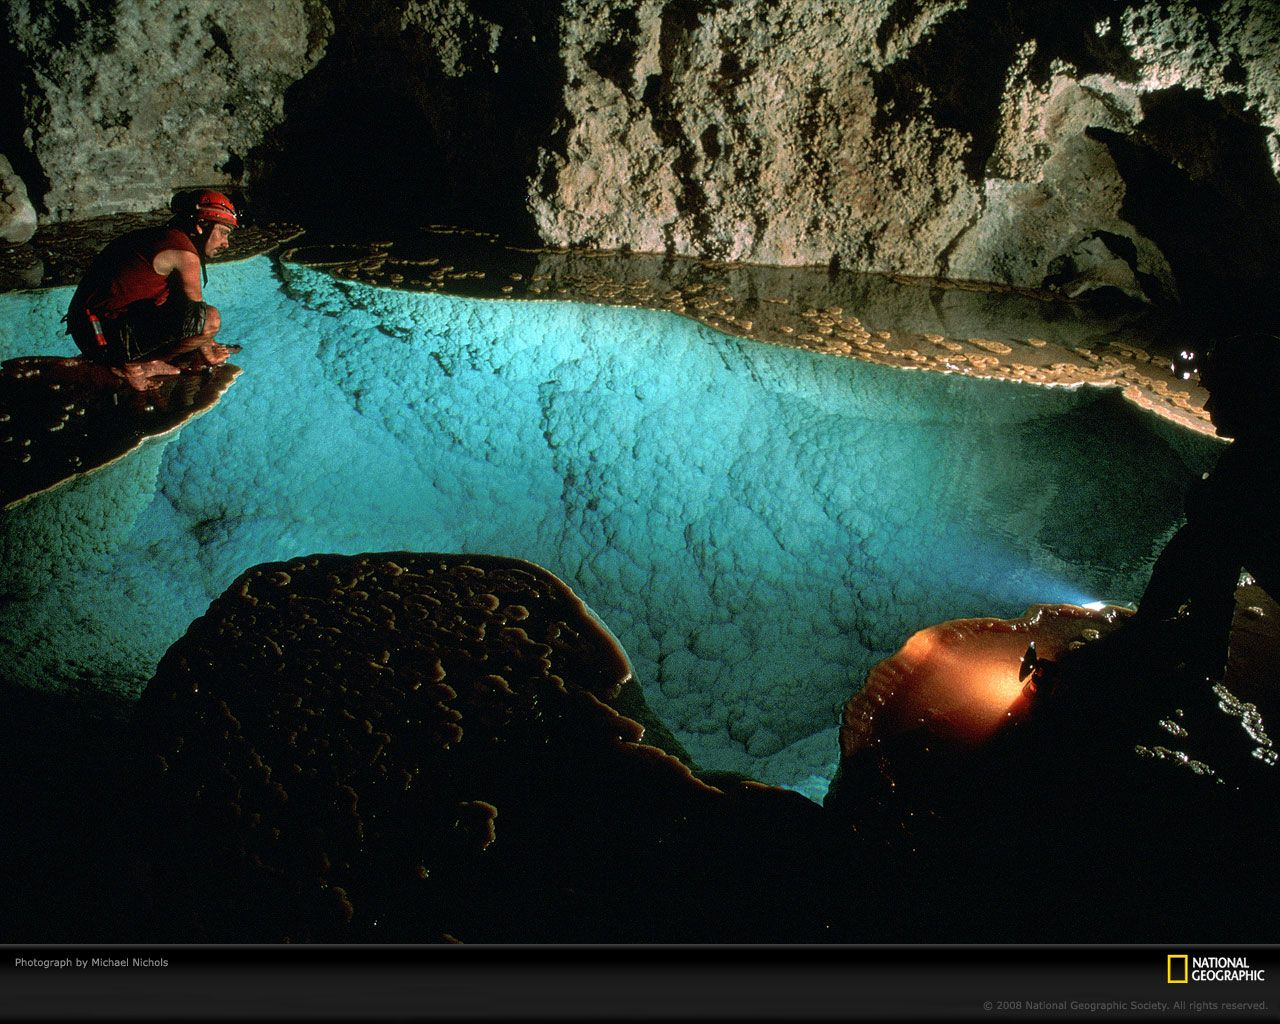 Lake Chandelier in Lechuguilla Cave, Carlsbad Caverns National Park, New Mexico.